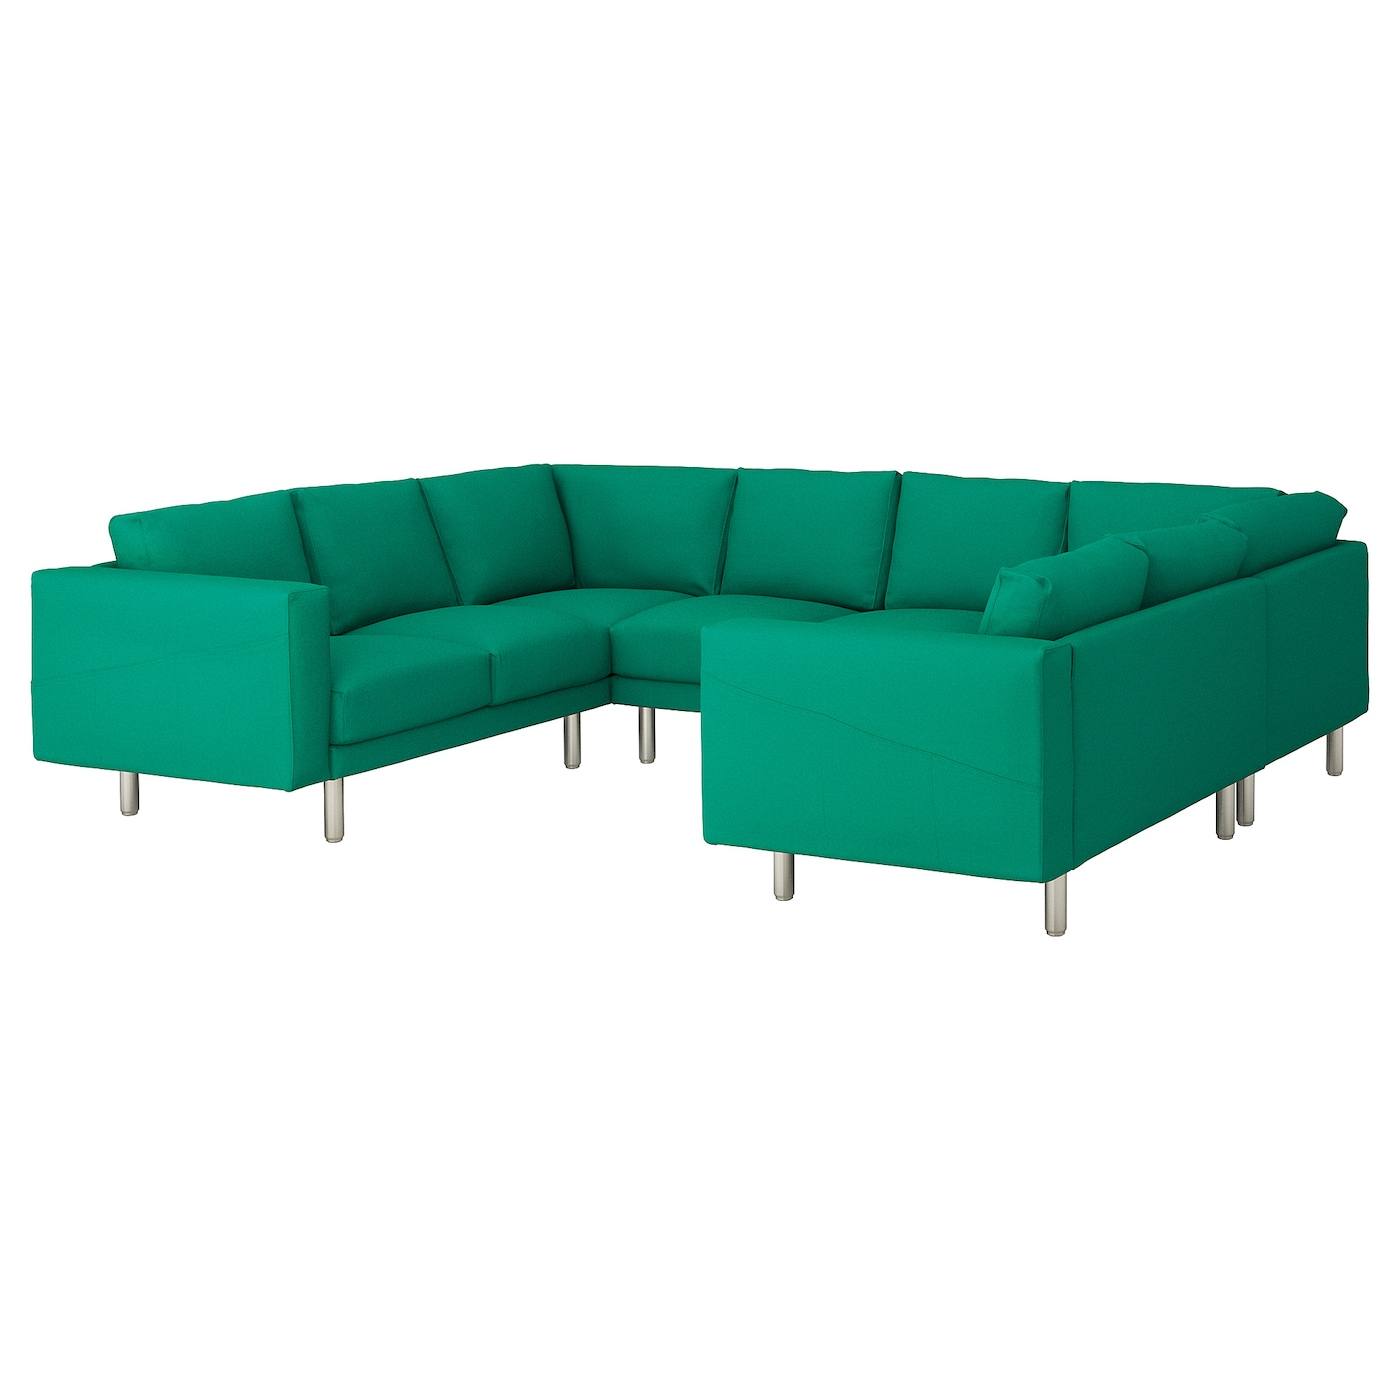 Modular sectional sofas ikea ireland - L shaped couches ikea ...